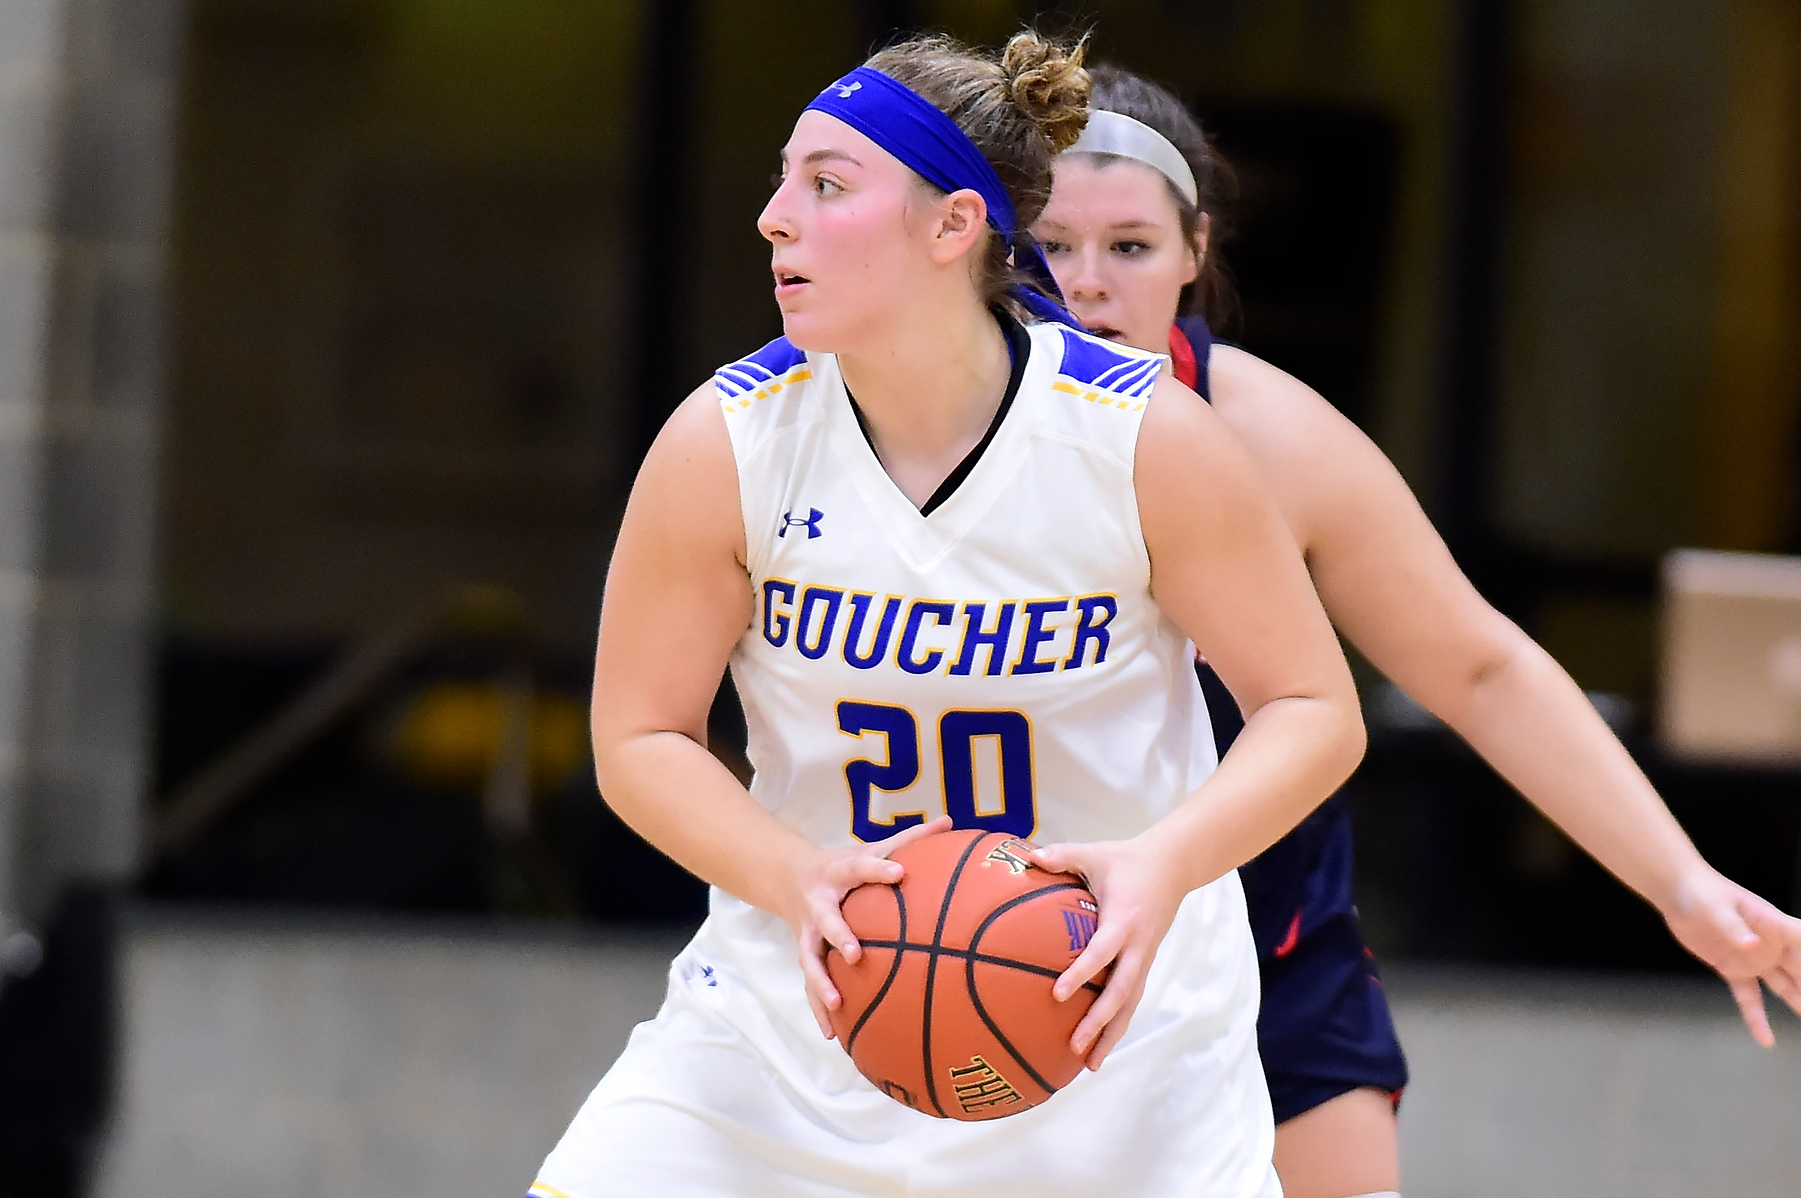 Wolard Leads Women's Basketball with 20 Points in Loss to Alvernia